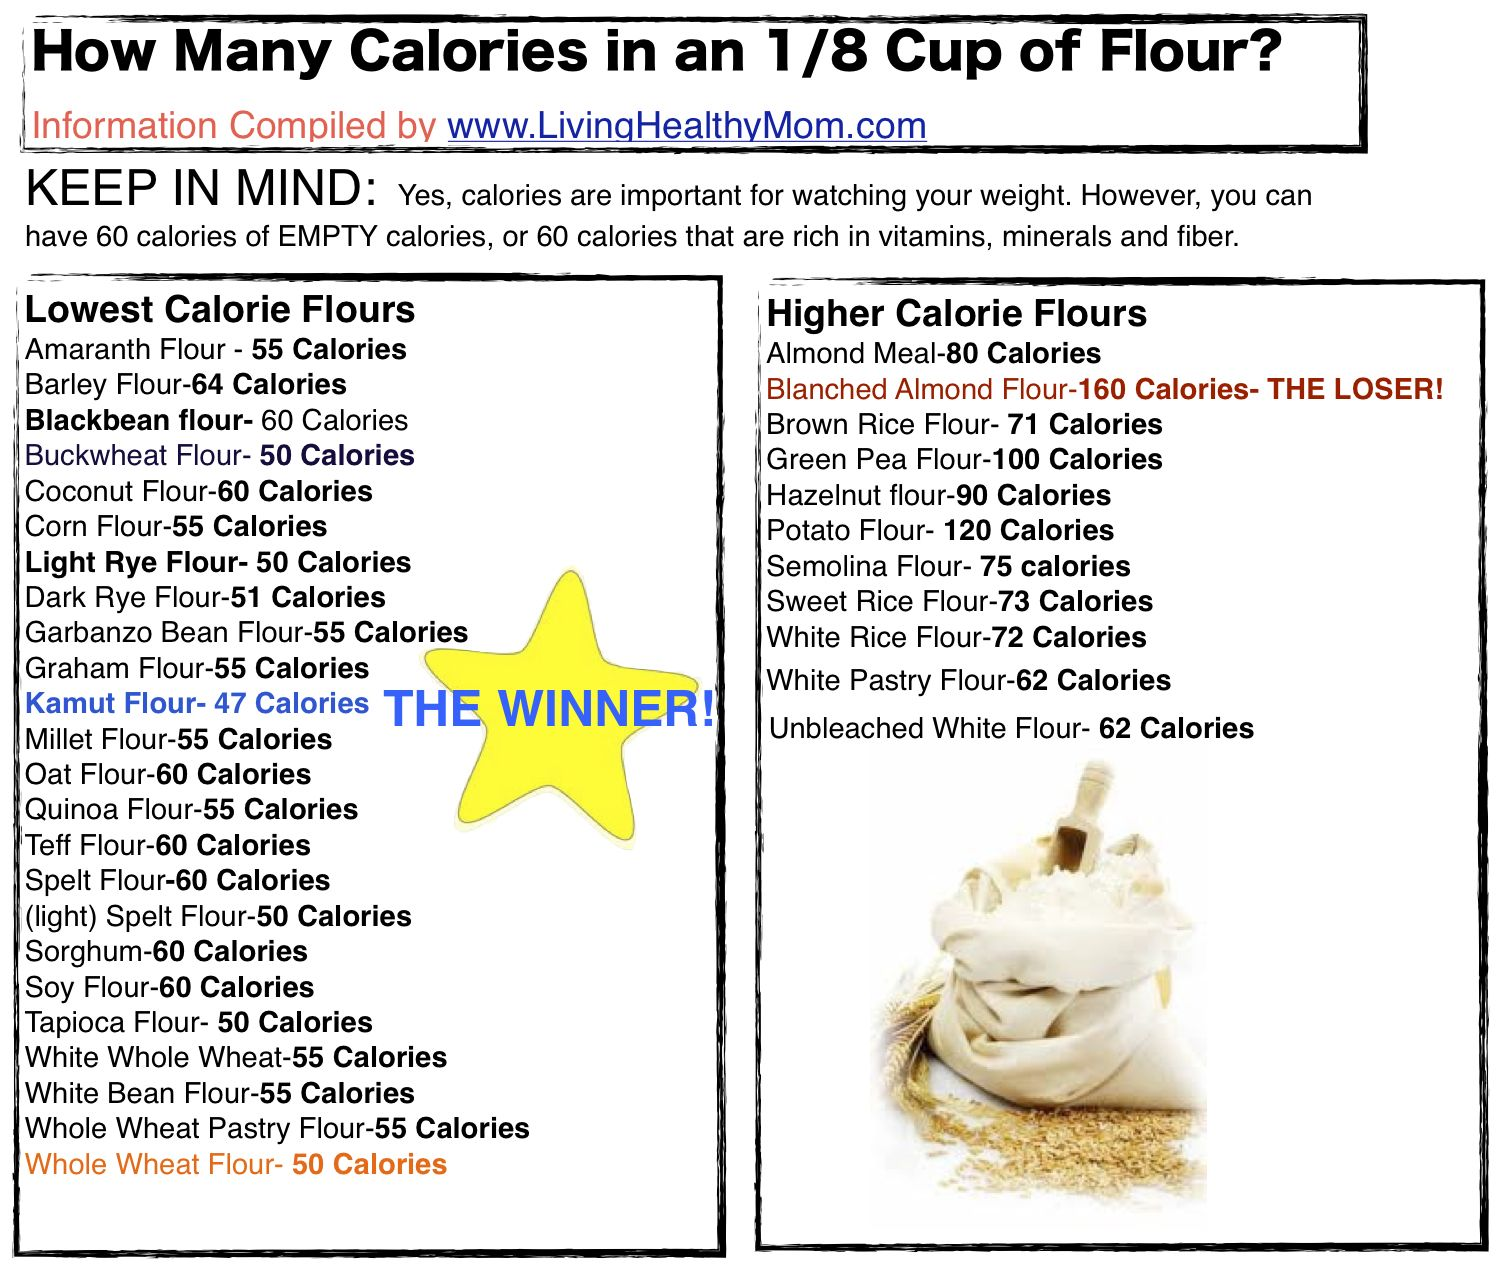 Baking Flour Caloric Values I M Absolutely Flabbergasted At This This Is For Only 1 8 A Cup It All Adds Up So Quickly Flour Calories Low Calorie Calorie